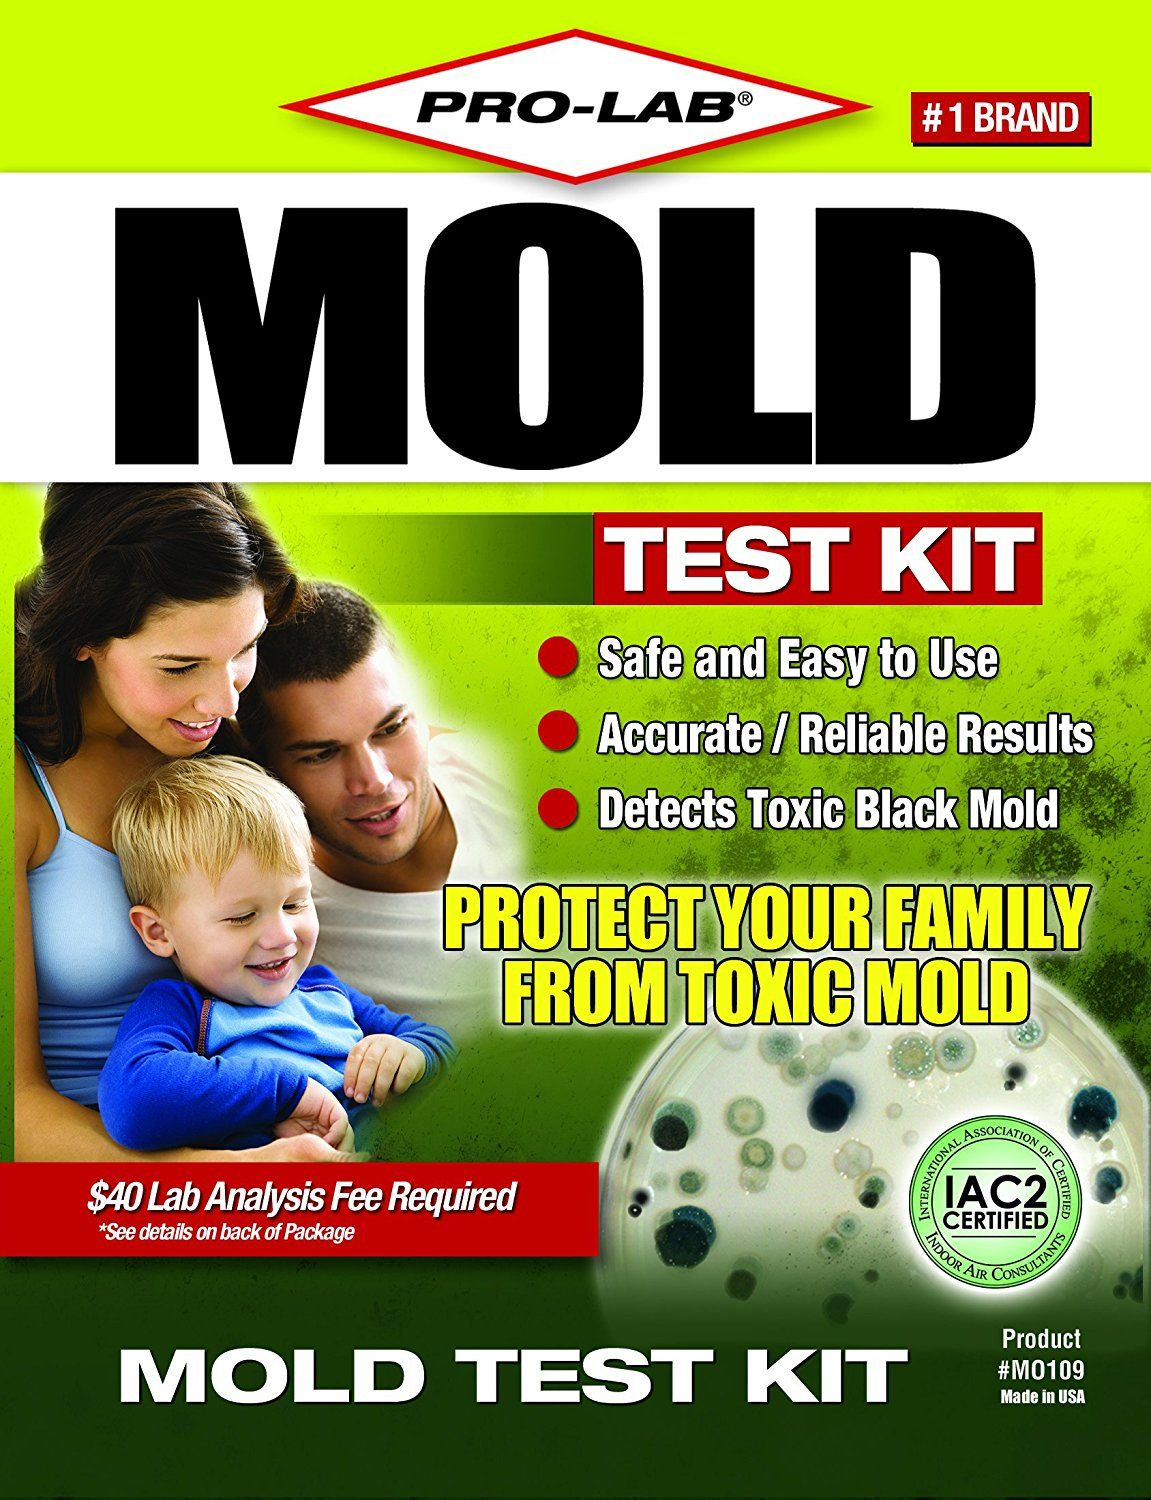 Pro Lab Mo109 Mold Do It Yourself Test Kit New And Awesome Product Awaits You Read Now Diy Today